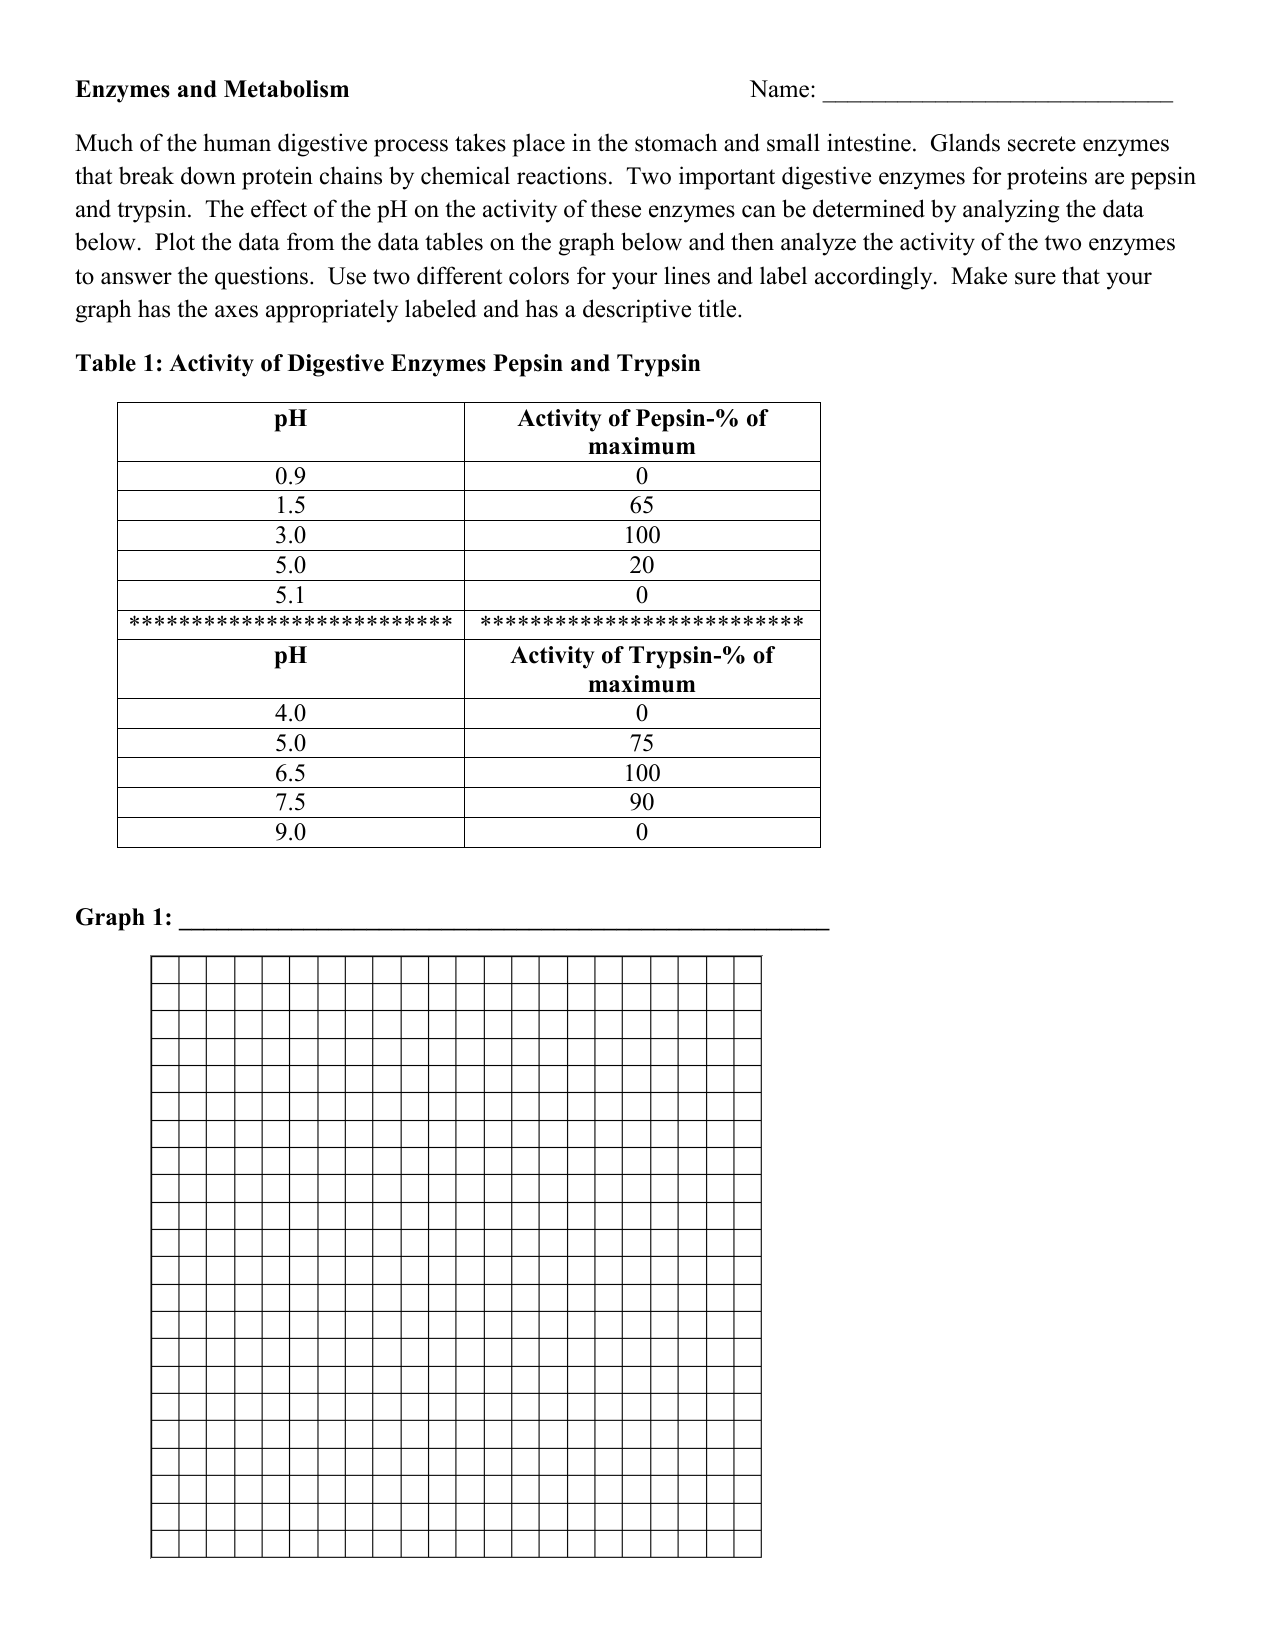 Biology 20 Enzymes Worksheet Answers